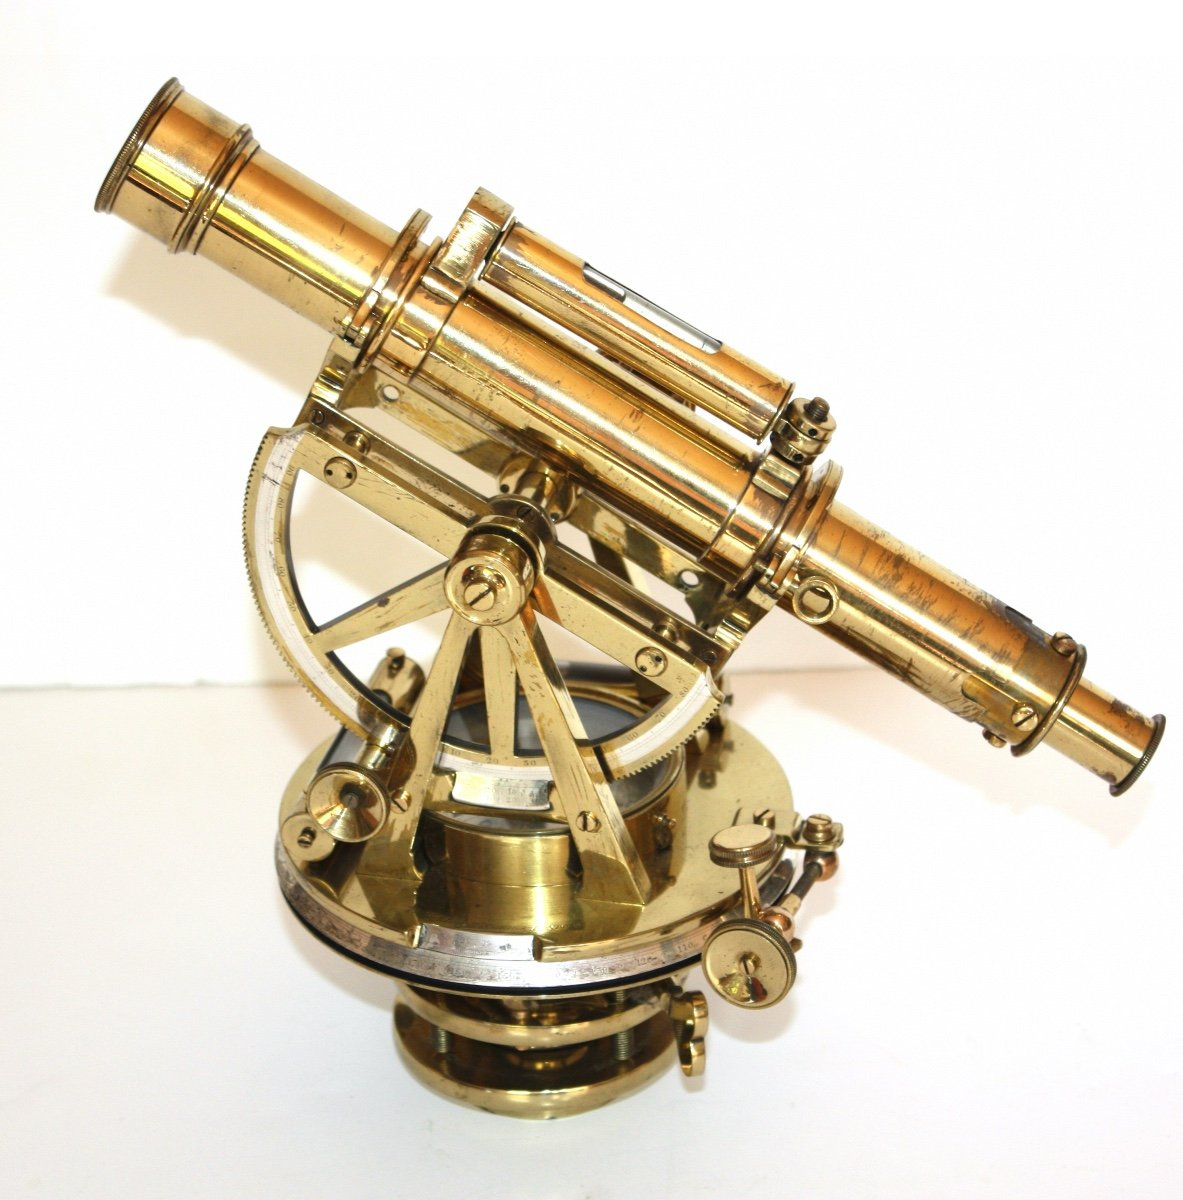 Theodolite Signed Troughton And Simms London C.1840